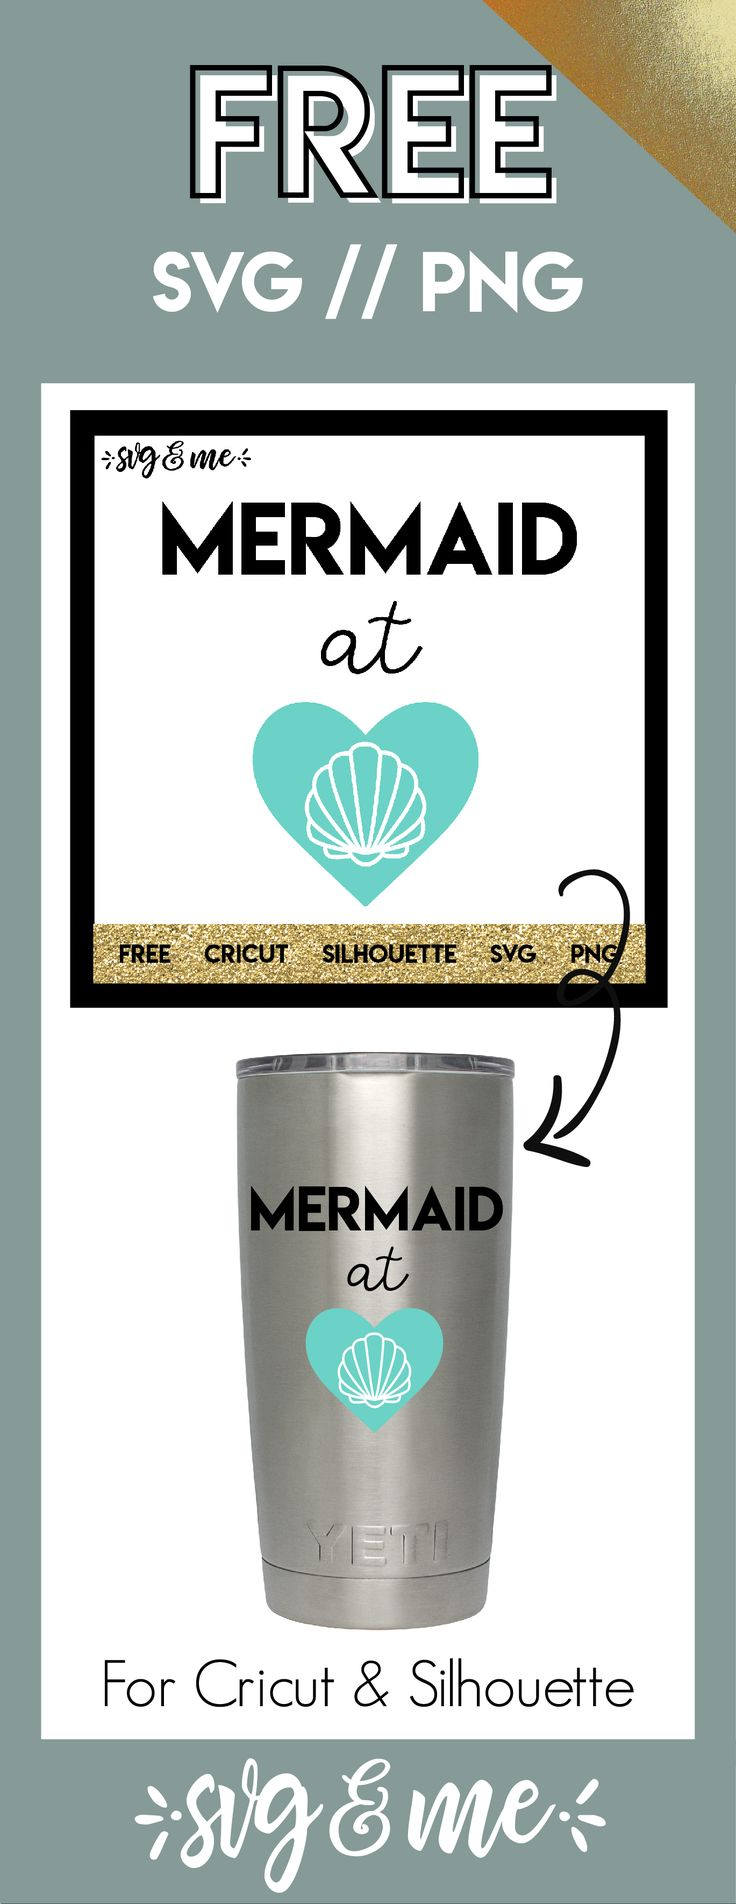 **FREE SVG CUT FILE** for Cricut, Silhouette and more - Mermaid at Heart Free SVG to make tumbler, beach tote, etc. #cricut #silhouette #mermaid